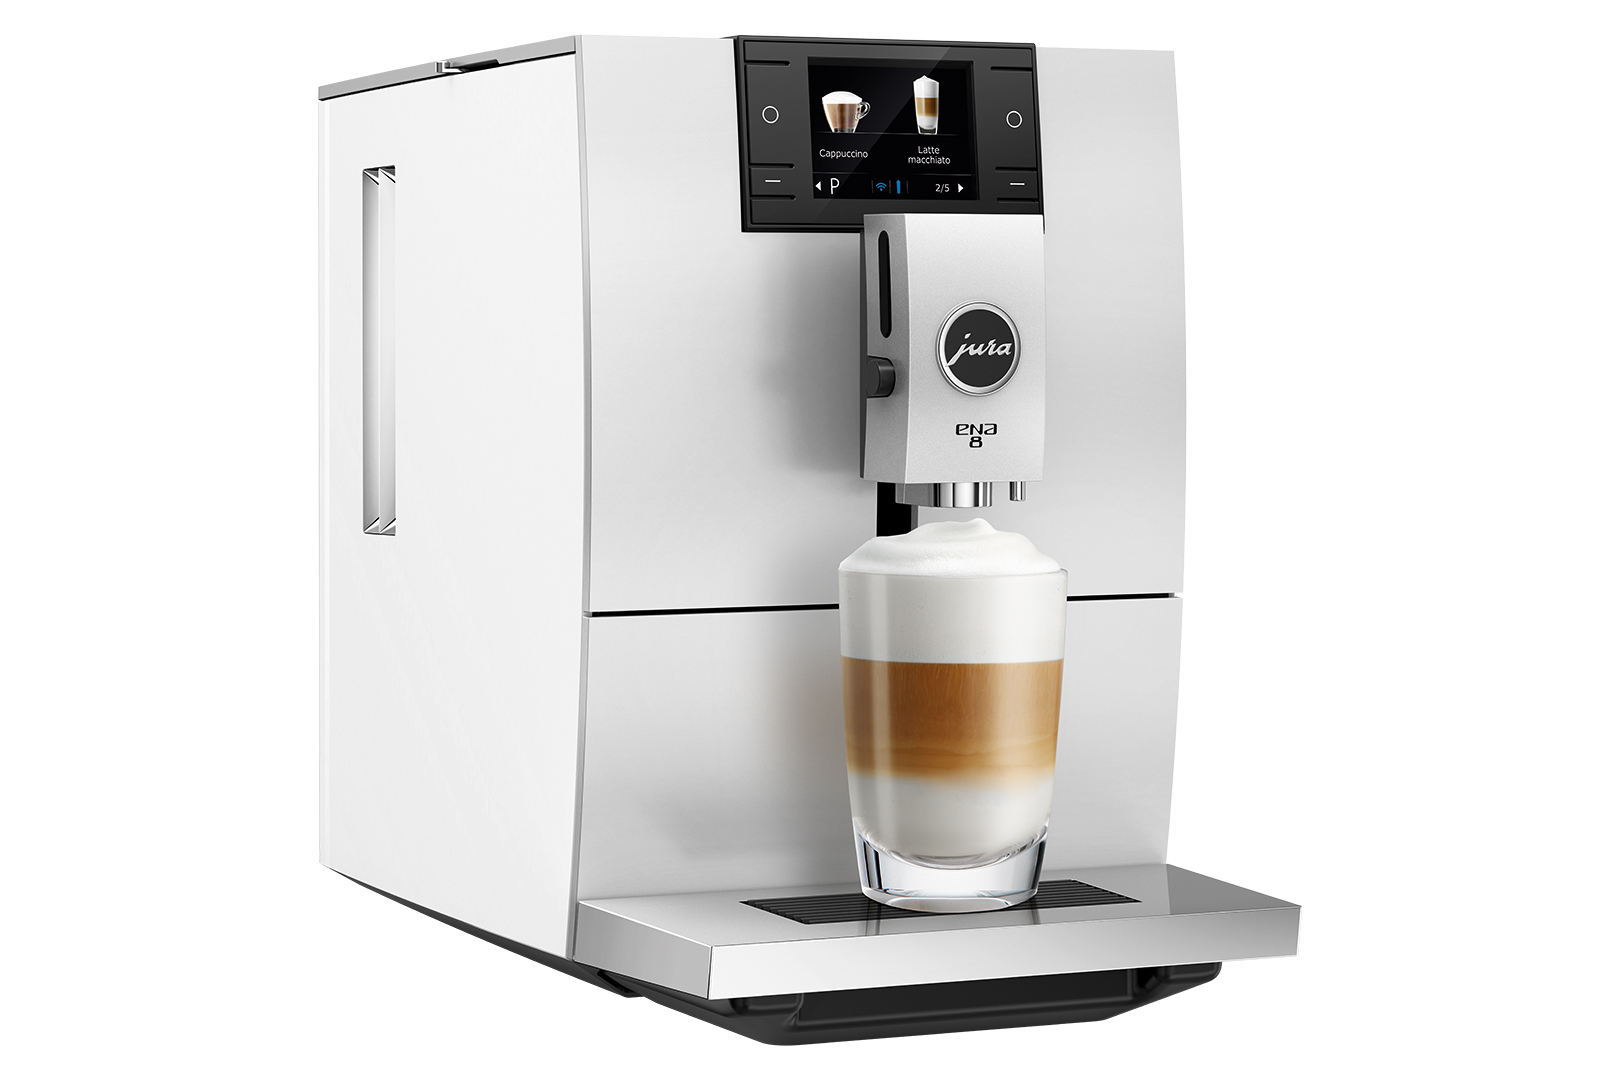 Carolina Coffee Jura ENA 8 - Nordic White